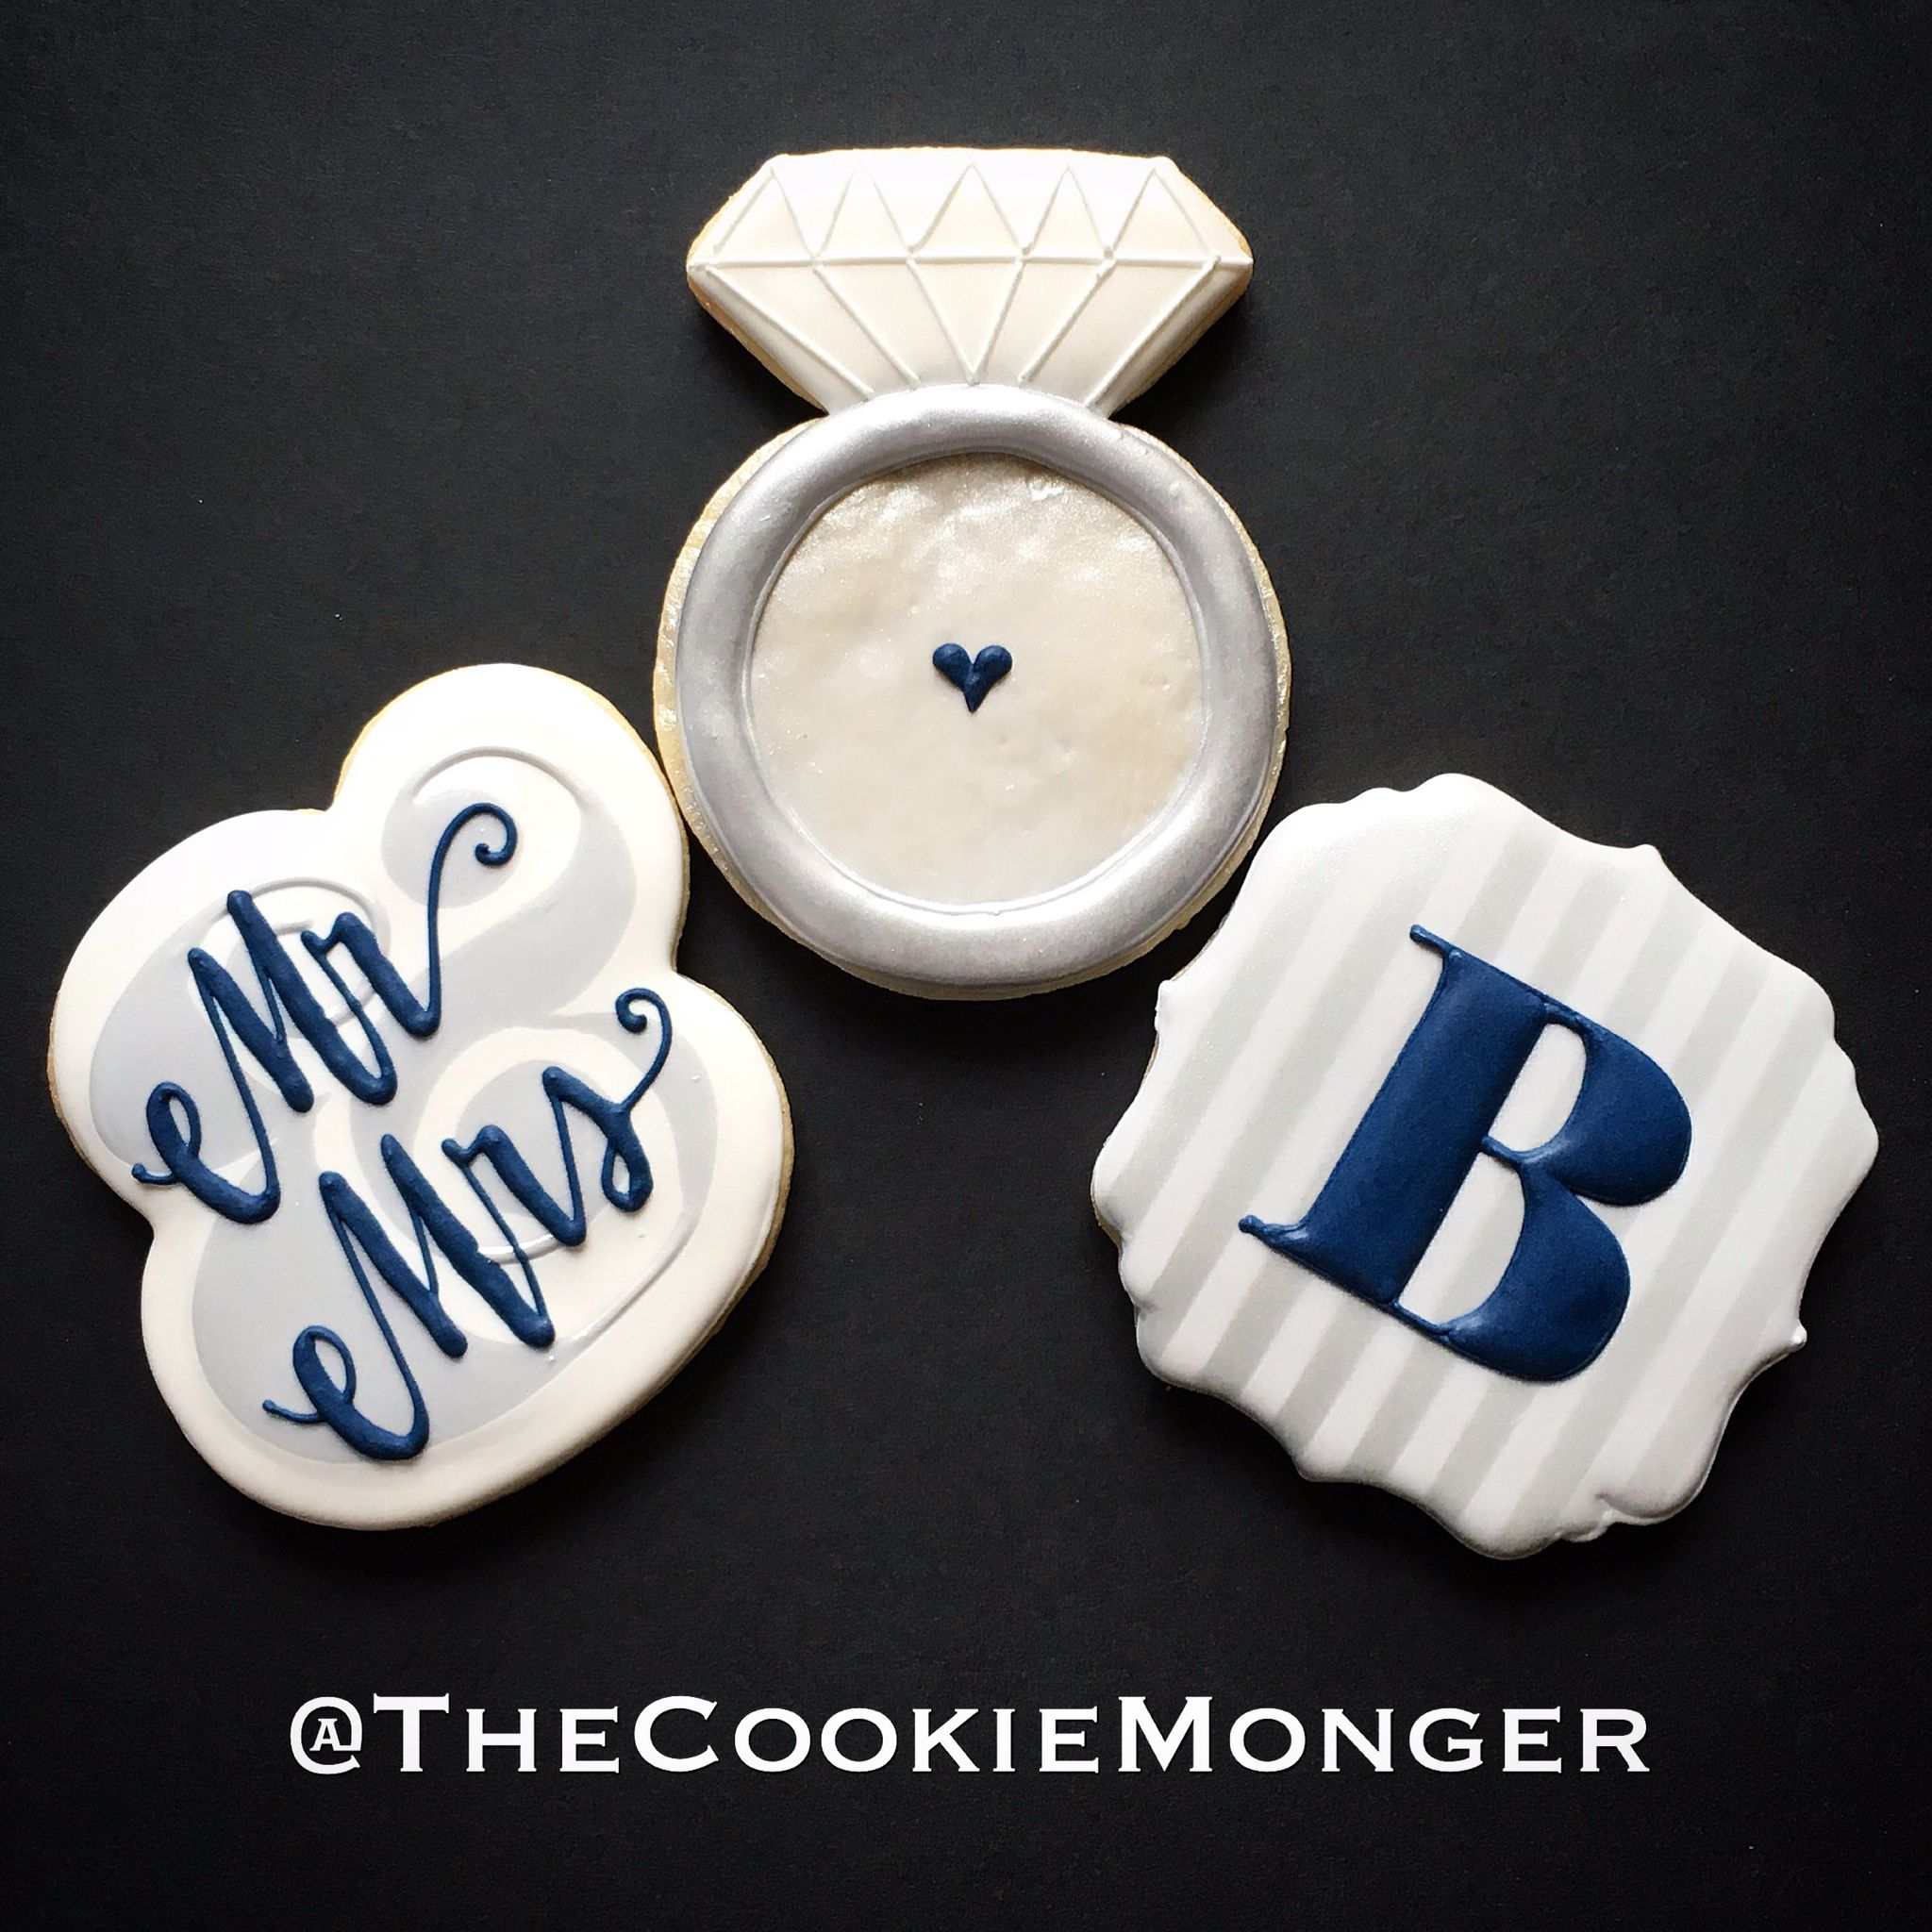 Elegant Shower Cookies ~ The CookieMonger ~ We can turn any idea into awesome cookies!  Email thecookiemonger@outlook.com.